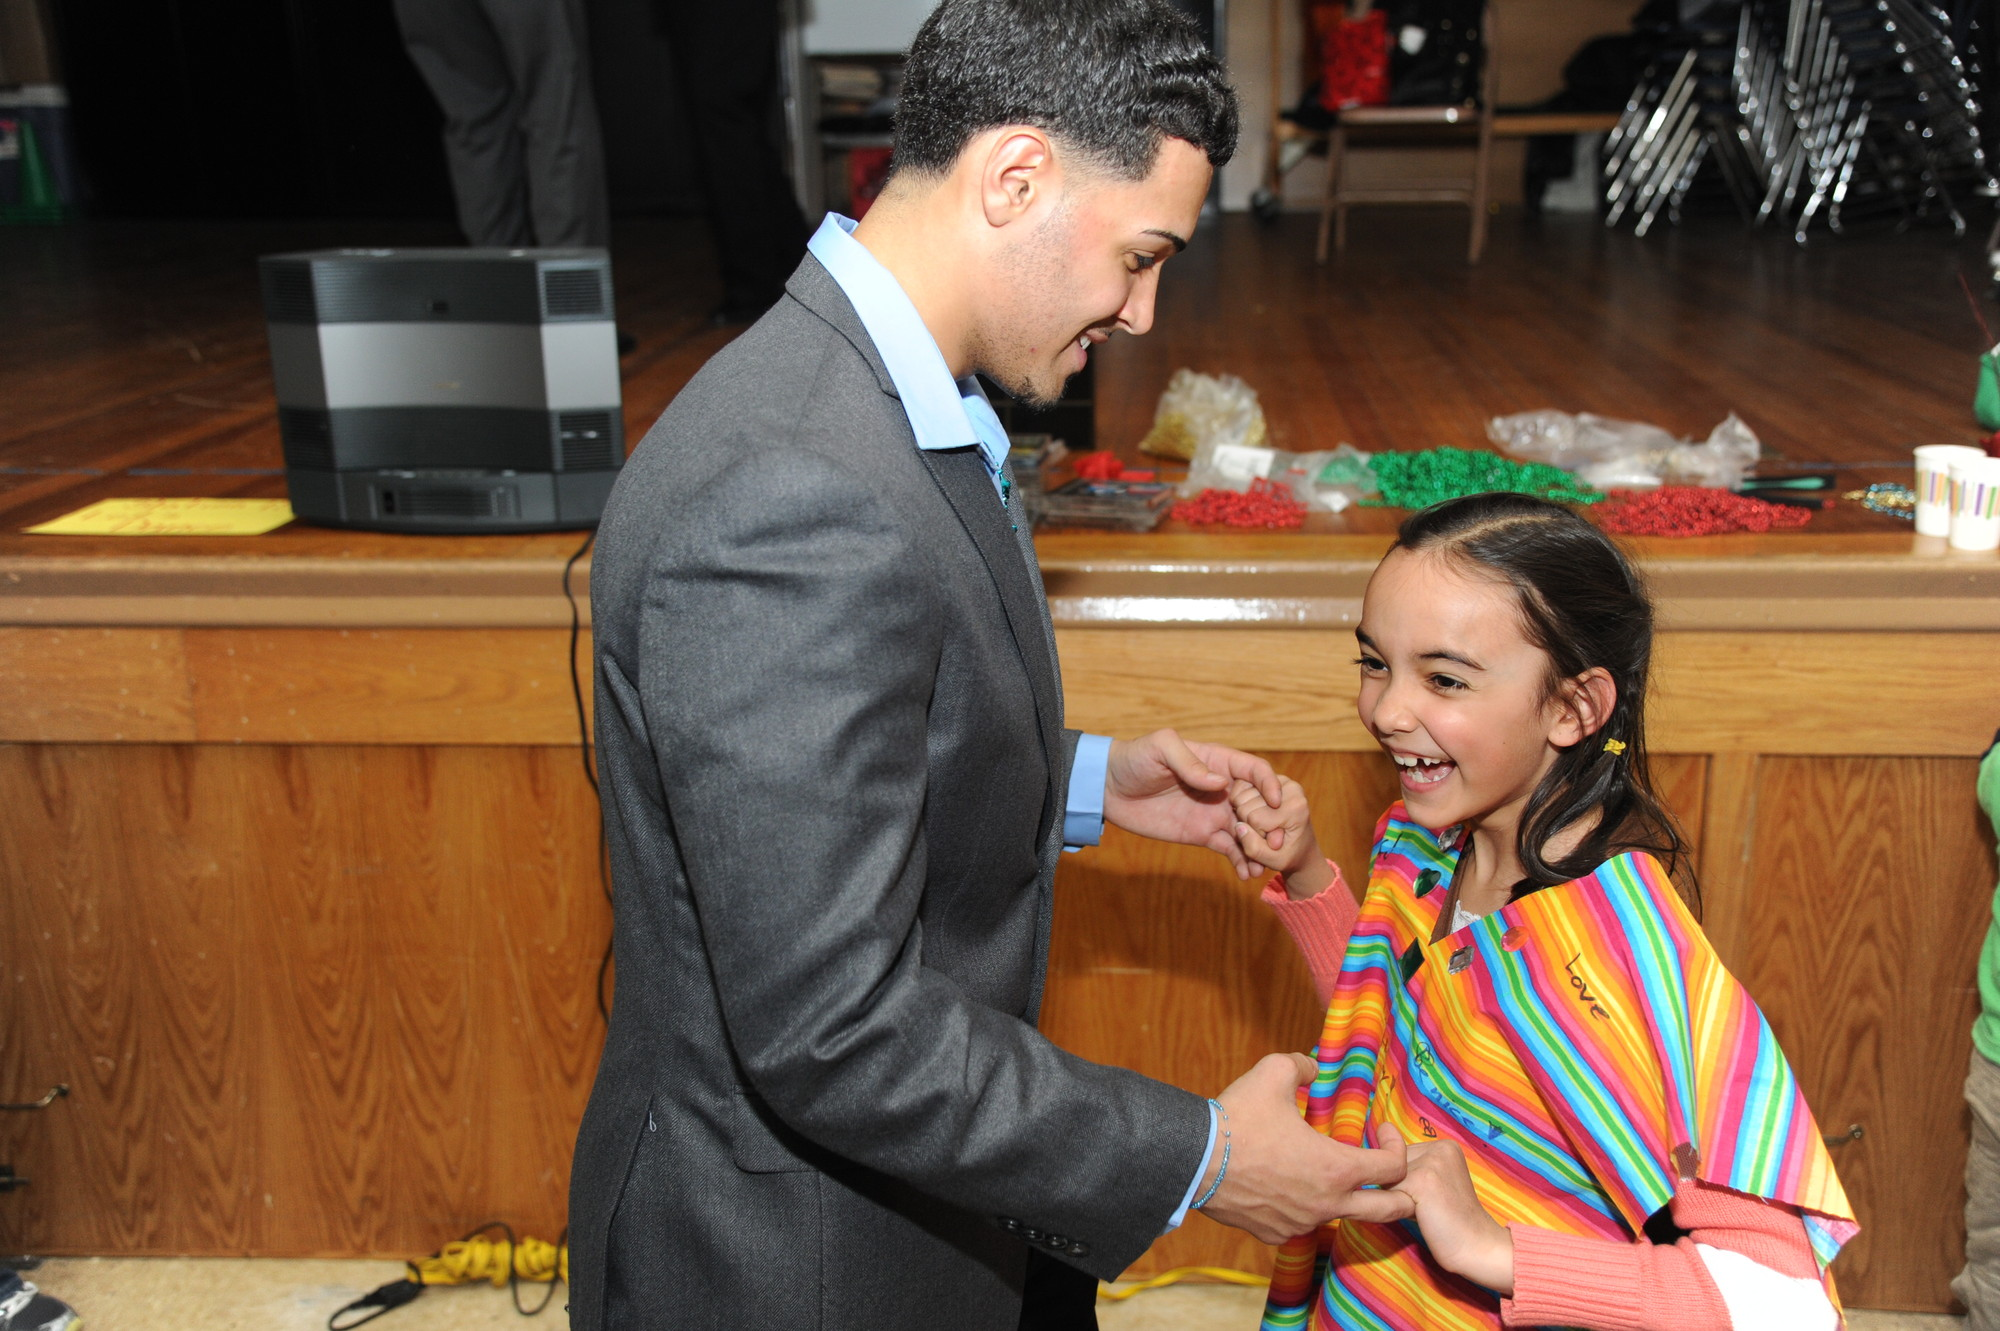 Marcus Ramirez taught Girl Scout Sevi Ozgur, 8, to salsa during his cousin Melina Ramirez's Latina Cultural Workshop at Meadowbrook Elementary School on March 28.